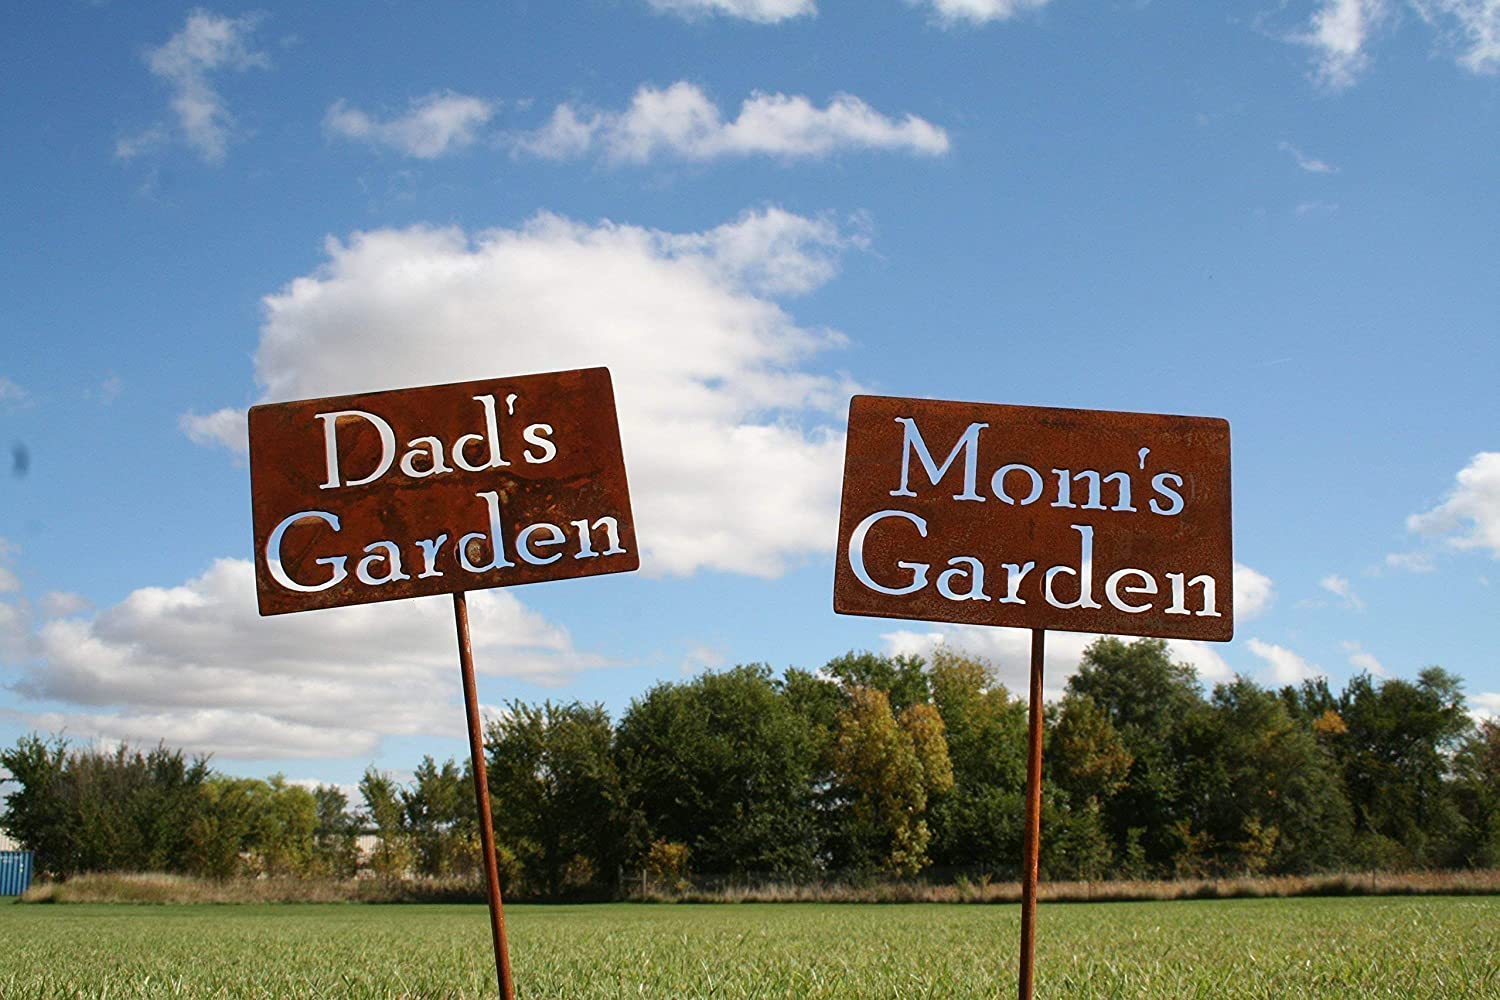 Rustic garden stakes with Mom's and Dad's garden signs